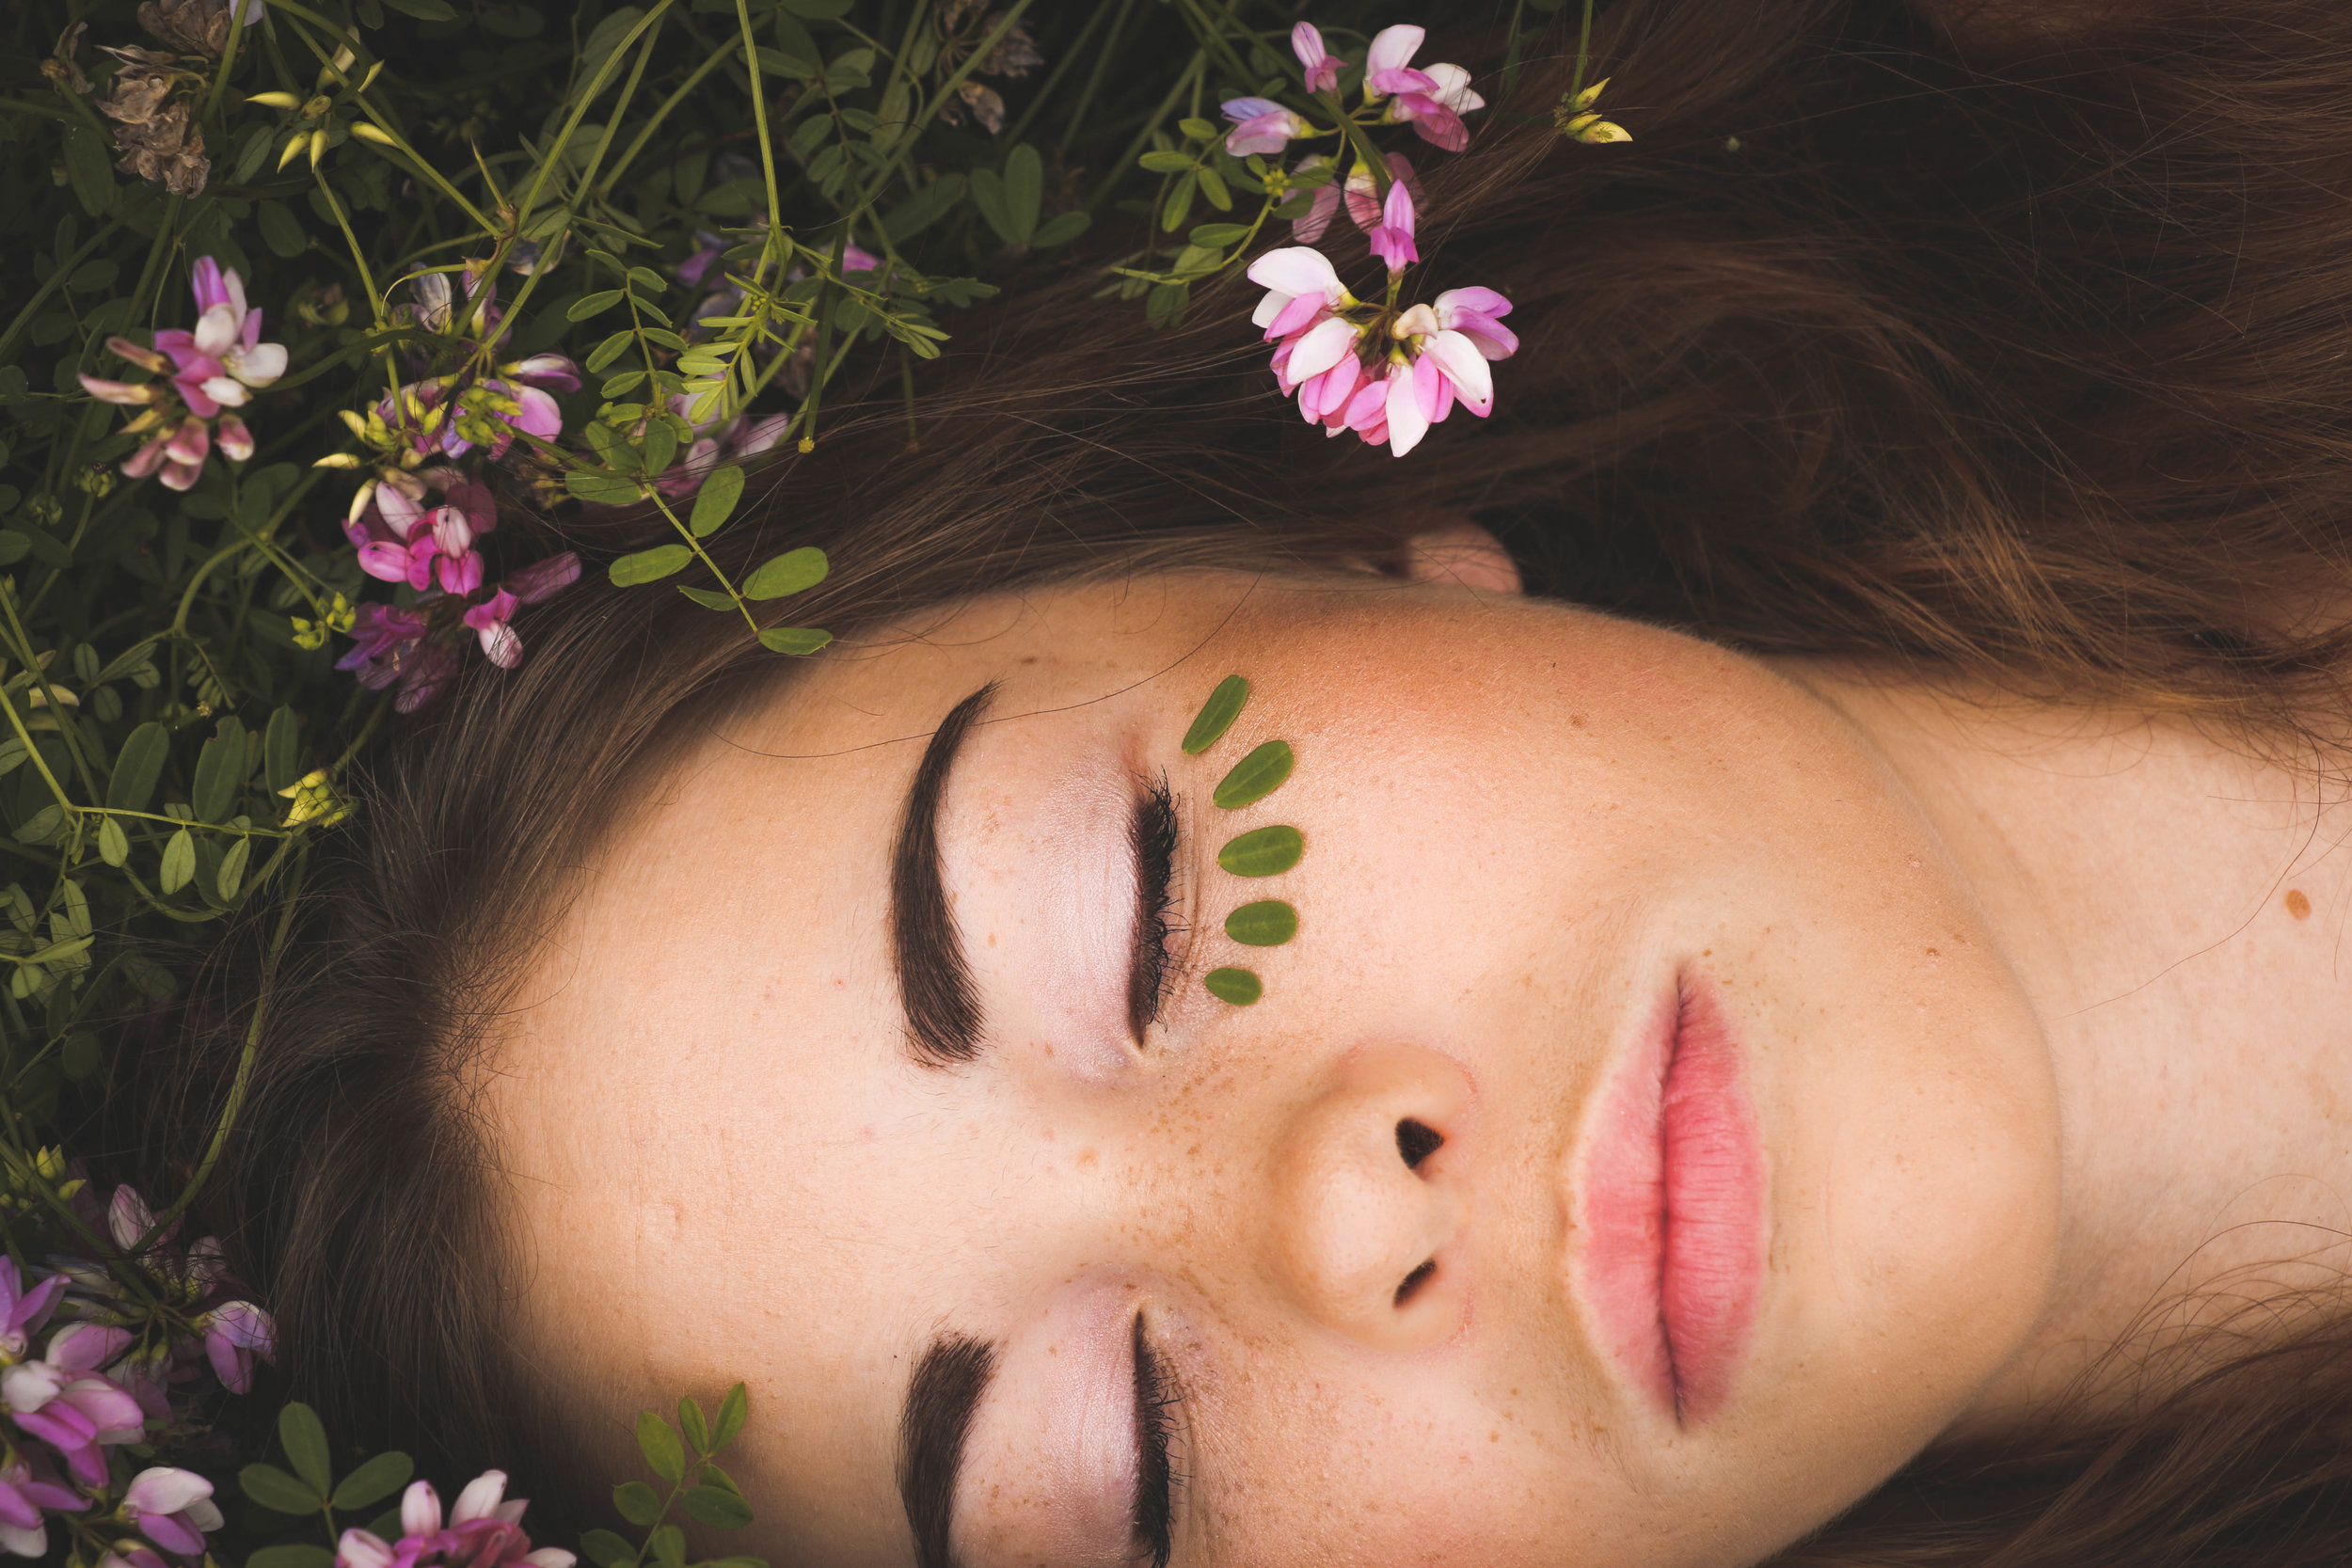 Discover Your Most Beautiful Skin With Kansas City's Premier Med Spa Located in Brookside. - Hollyday Med Spa is dedicated to providing the highest quality personal care and skin products to reveal the most beautiful version of you this spring.